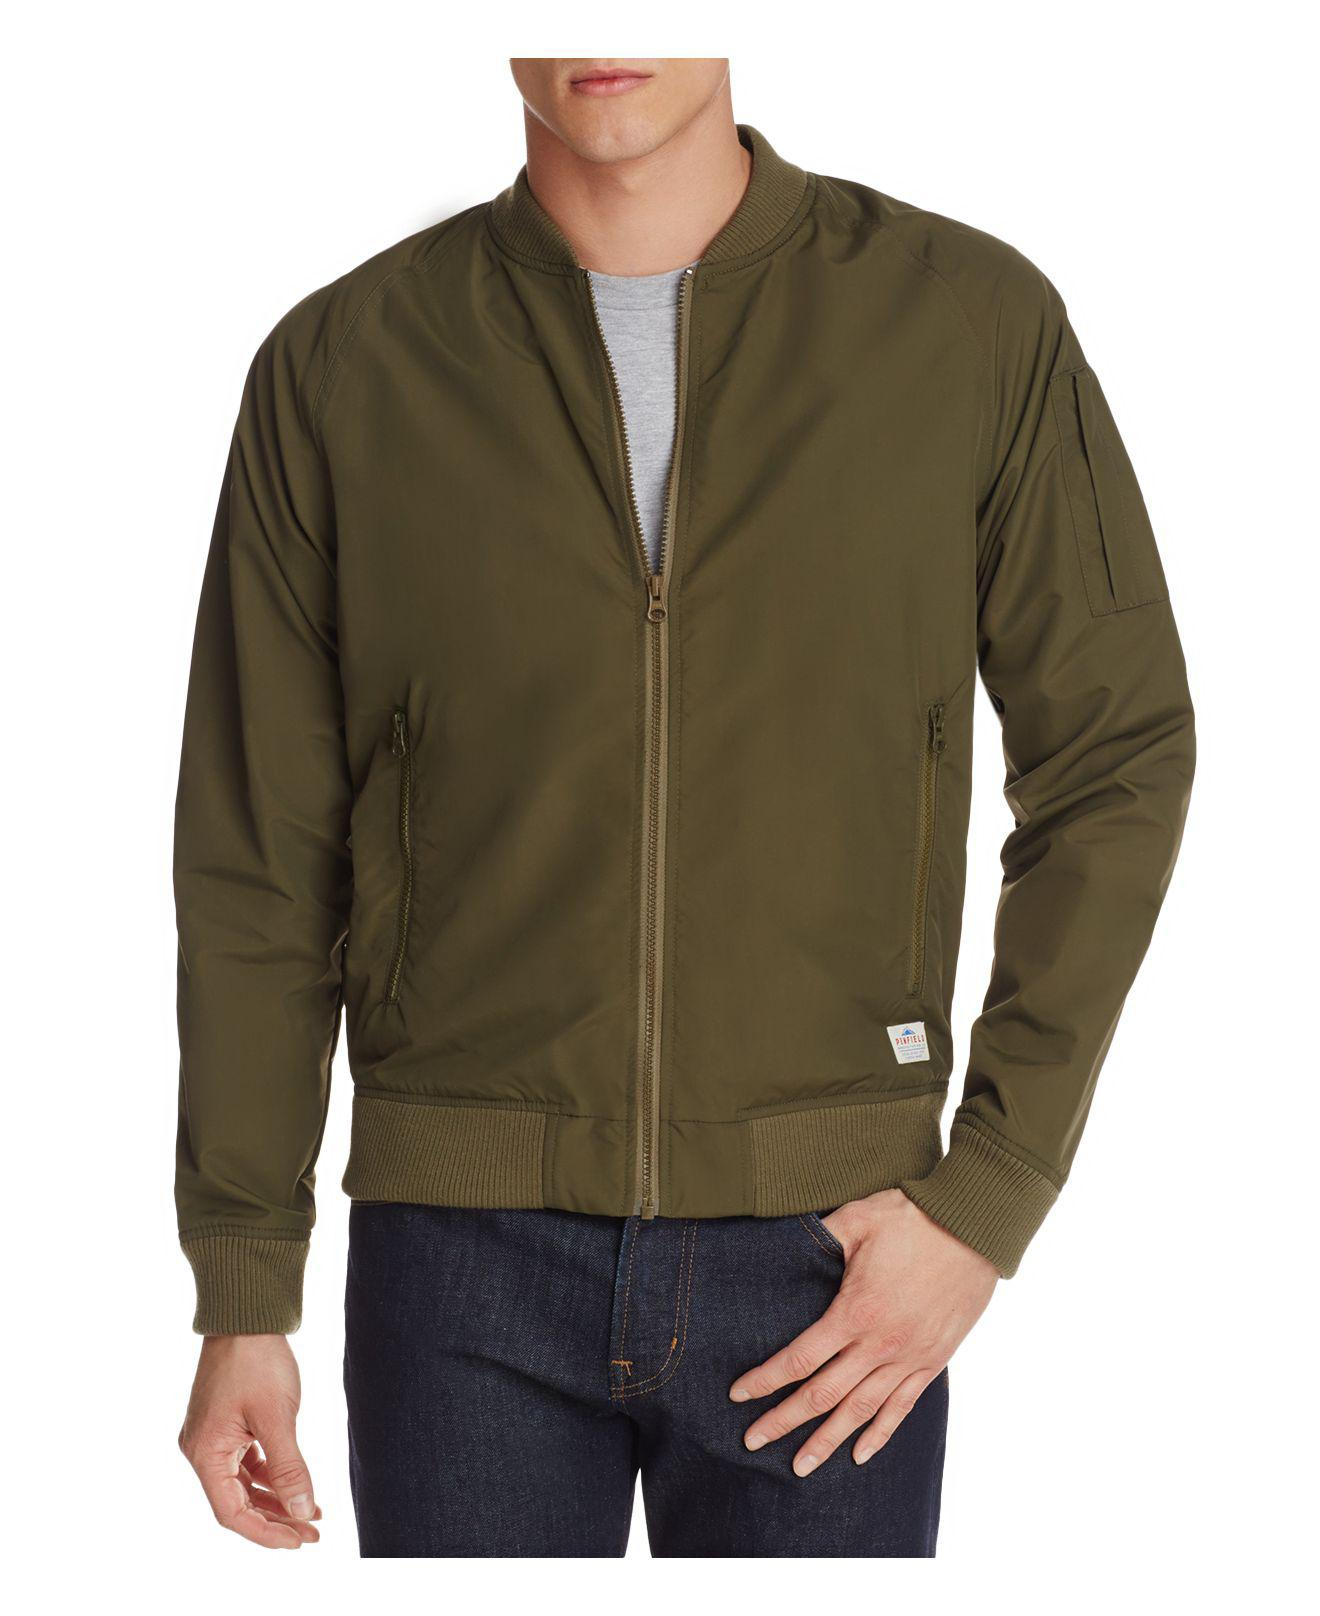 c94ad5fb3 Penfield Okenfield Bomber Jacket in Green for Men - Lyst